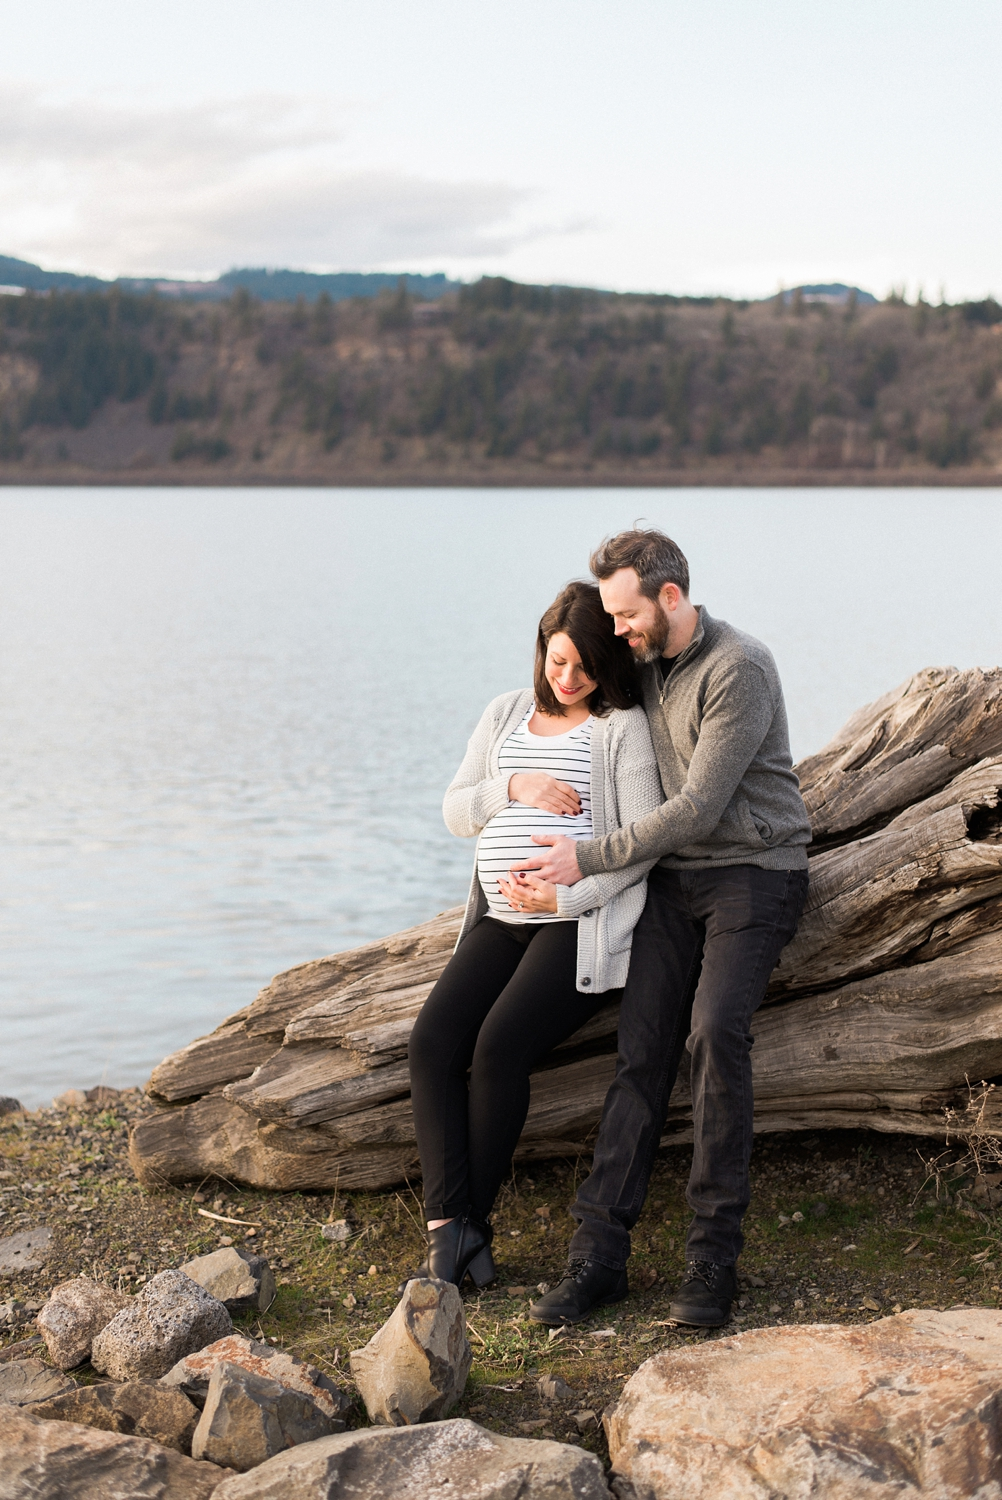 hood-river-maternity-photos-columbia-river-gorge-shelley-marie-photo-109_cr.jpg